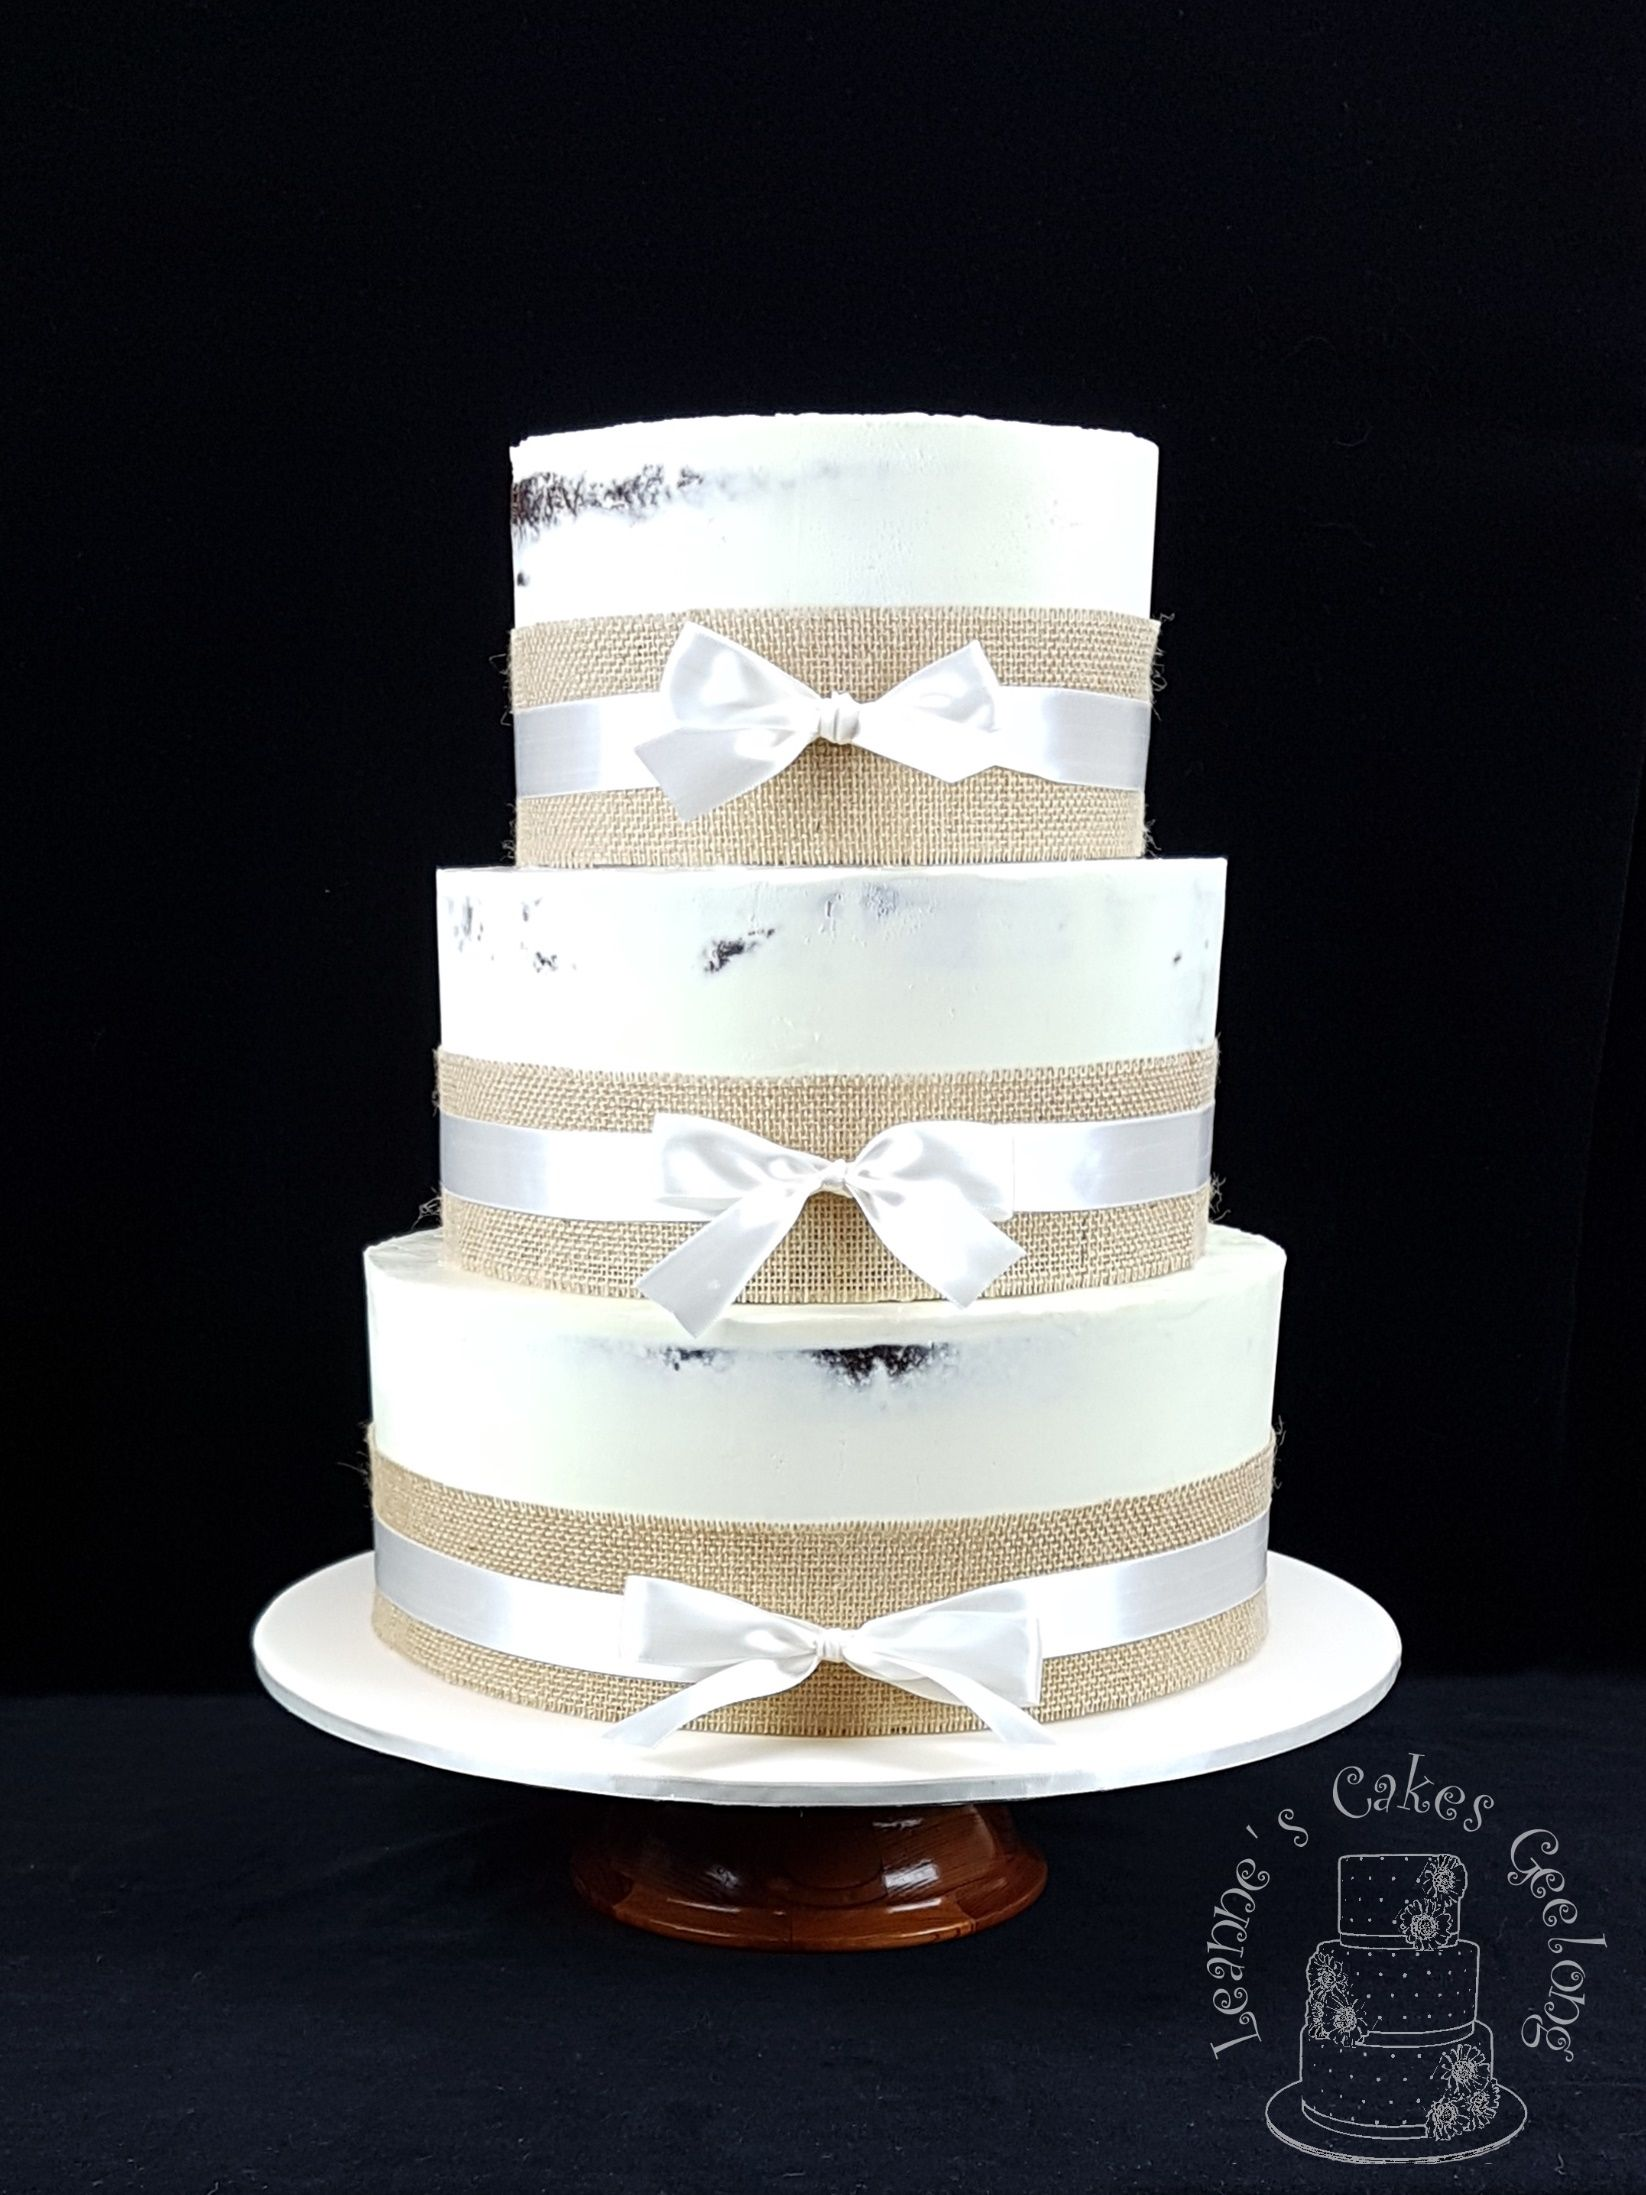 Rustic Wedding Cake: Laura and Gary chose a semi-naked chocolate mud ...